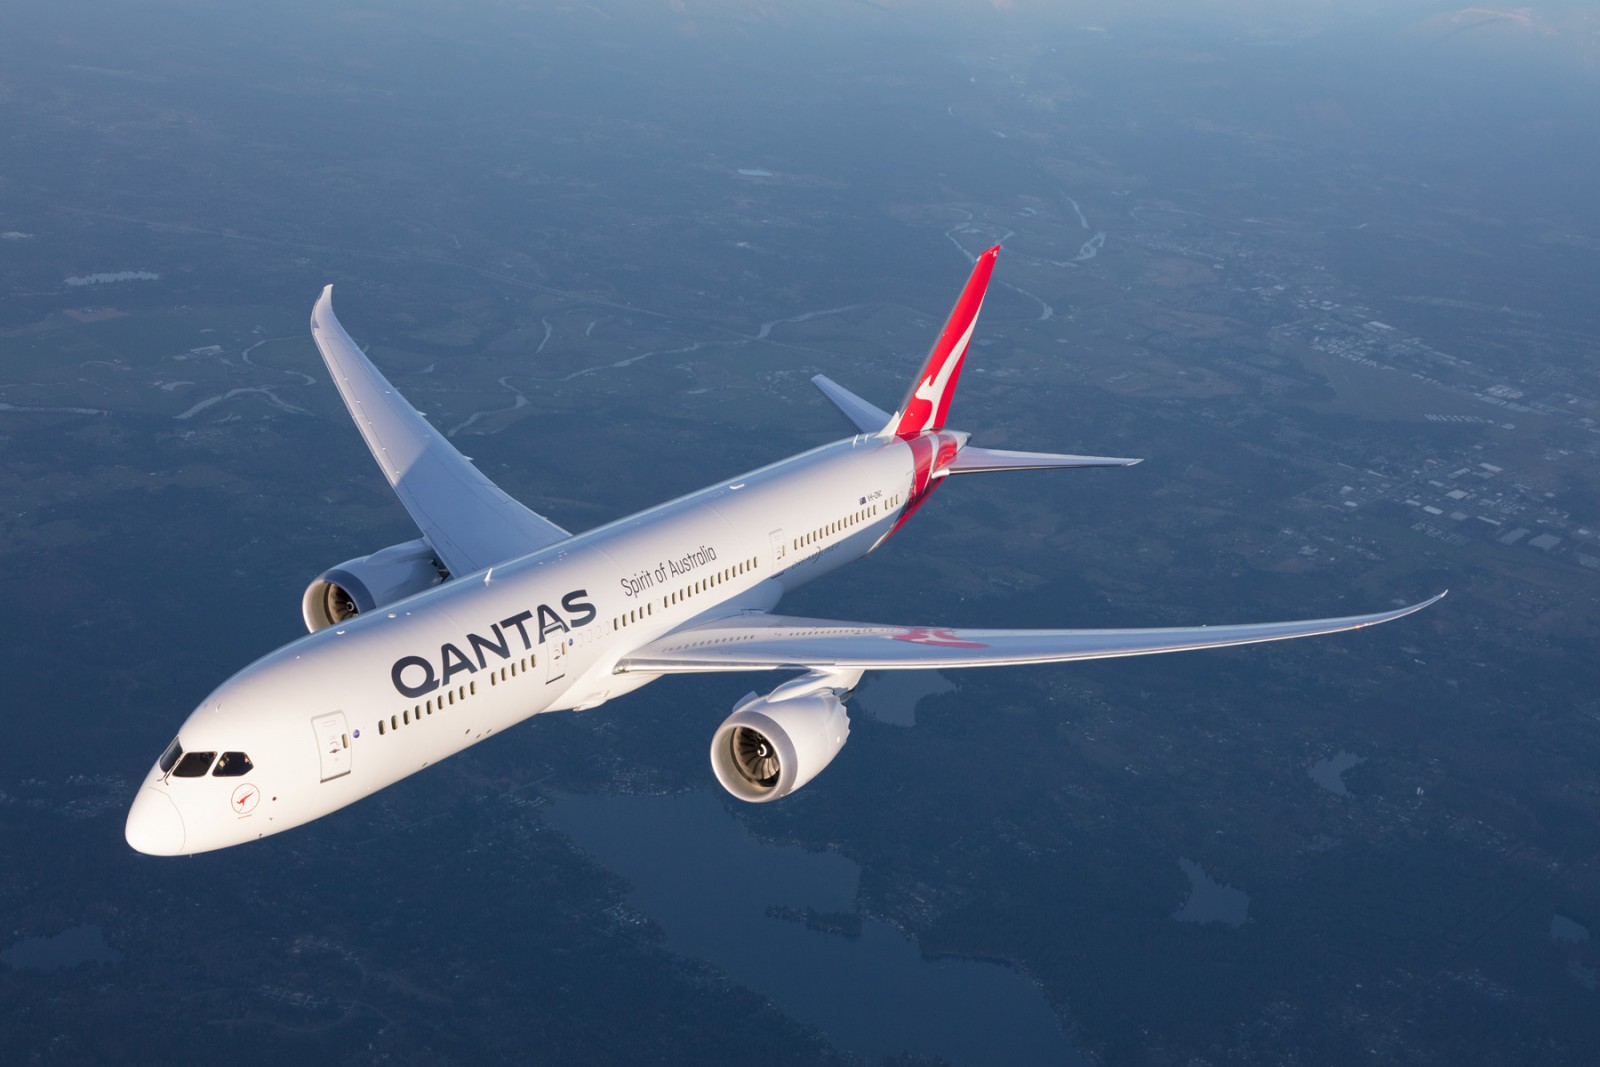 Qantas 787 Chicago